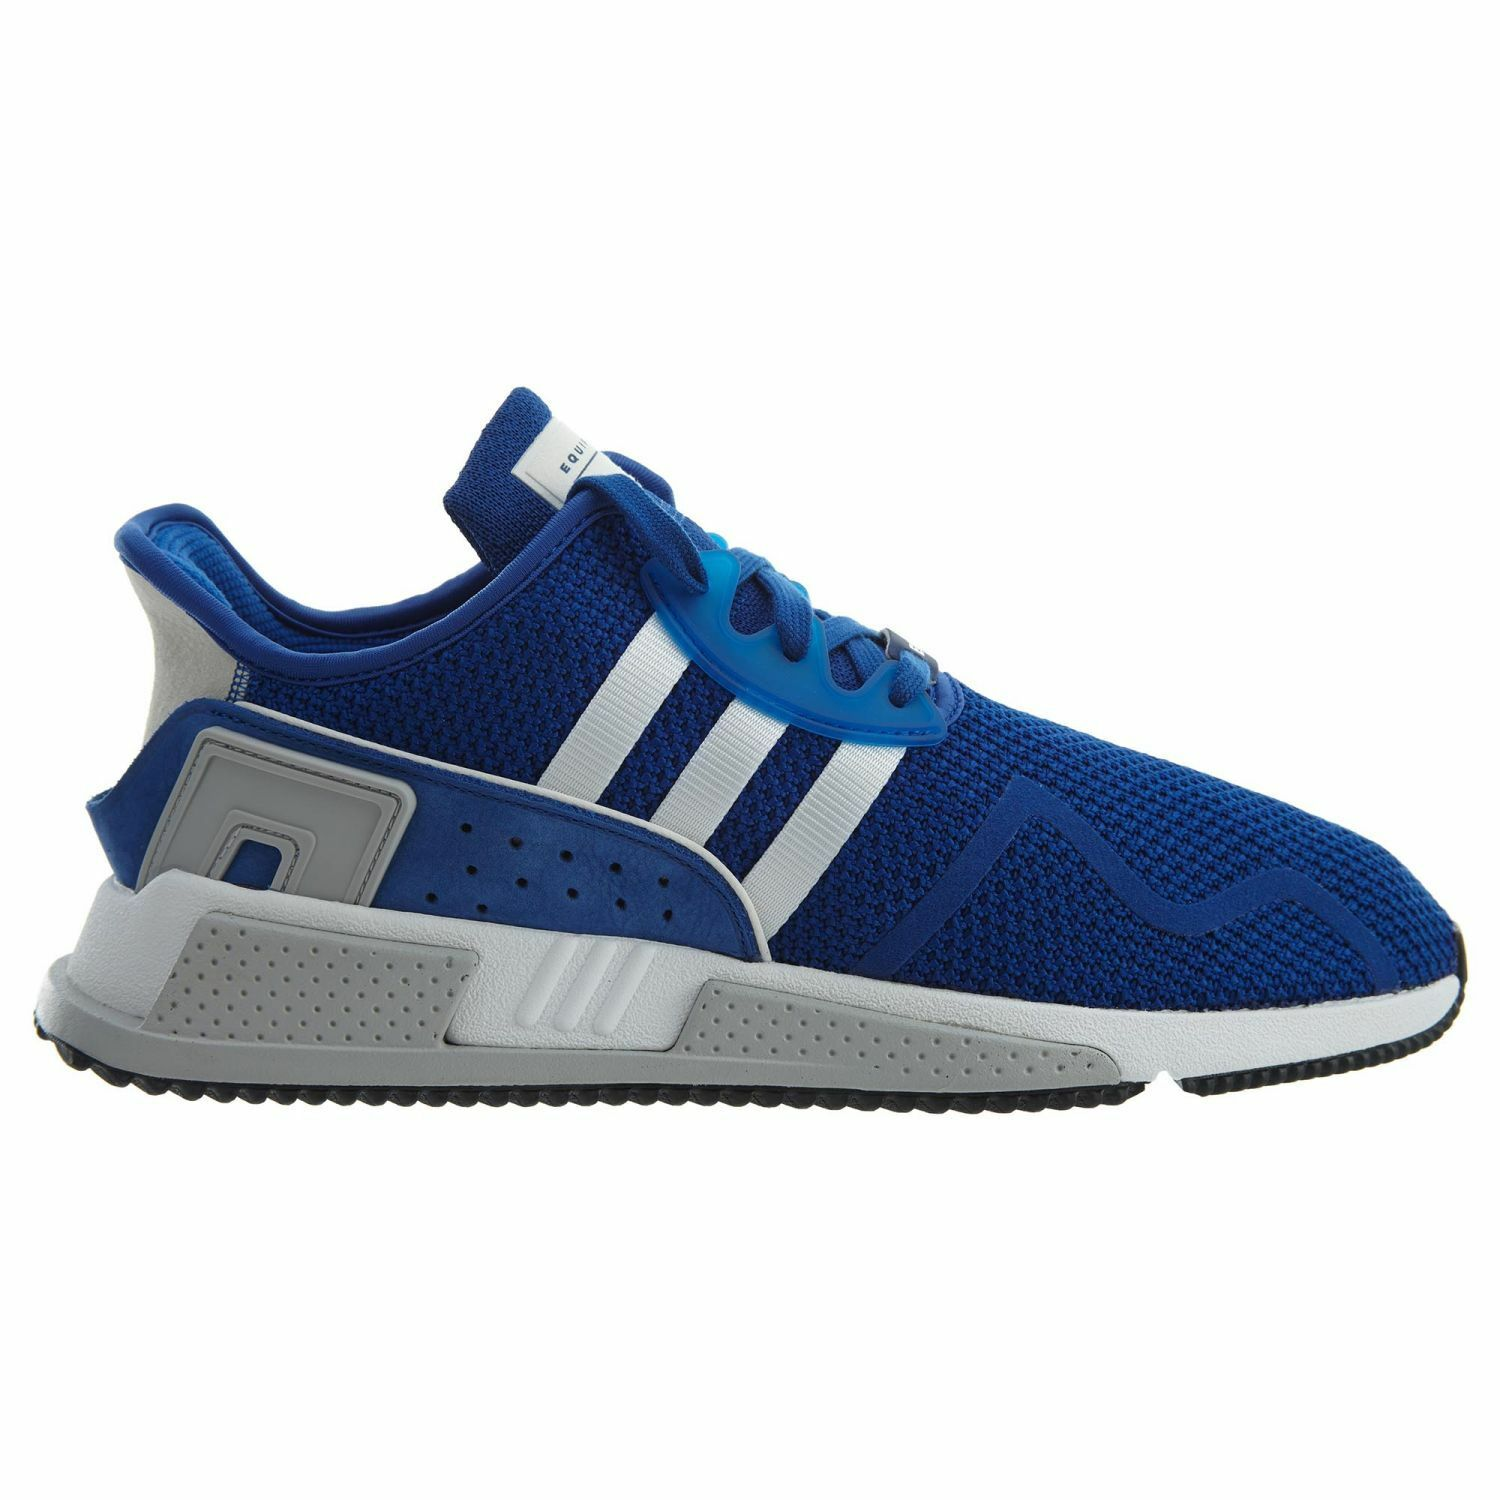 Adidas EQT Cushion Adv Mens CQ2380 Royal Blue White Knit Running Shoes Size 8